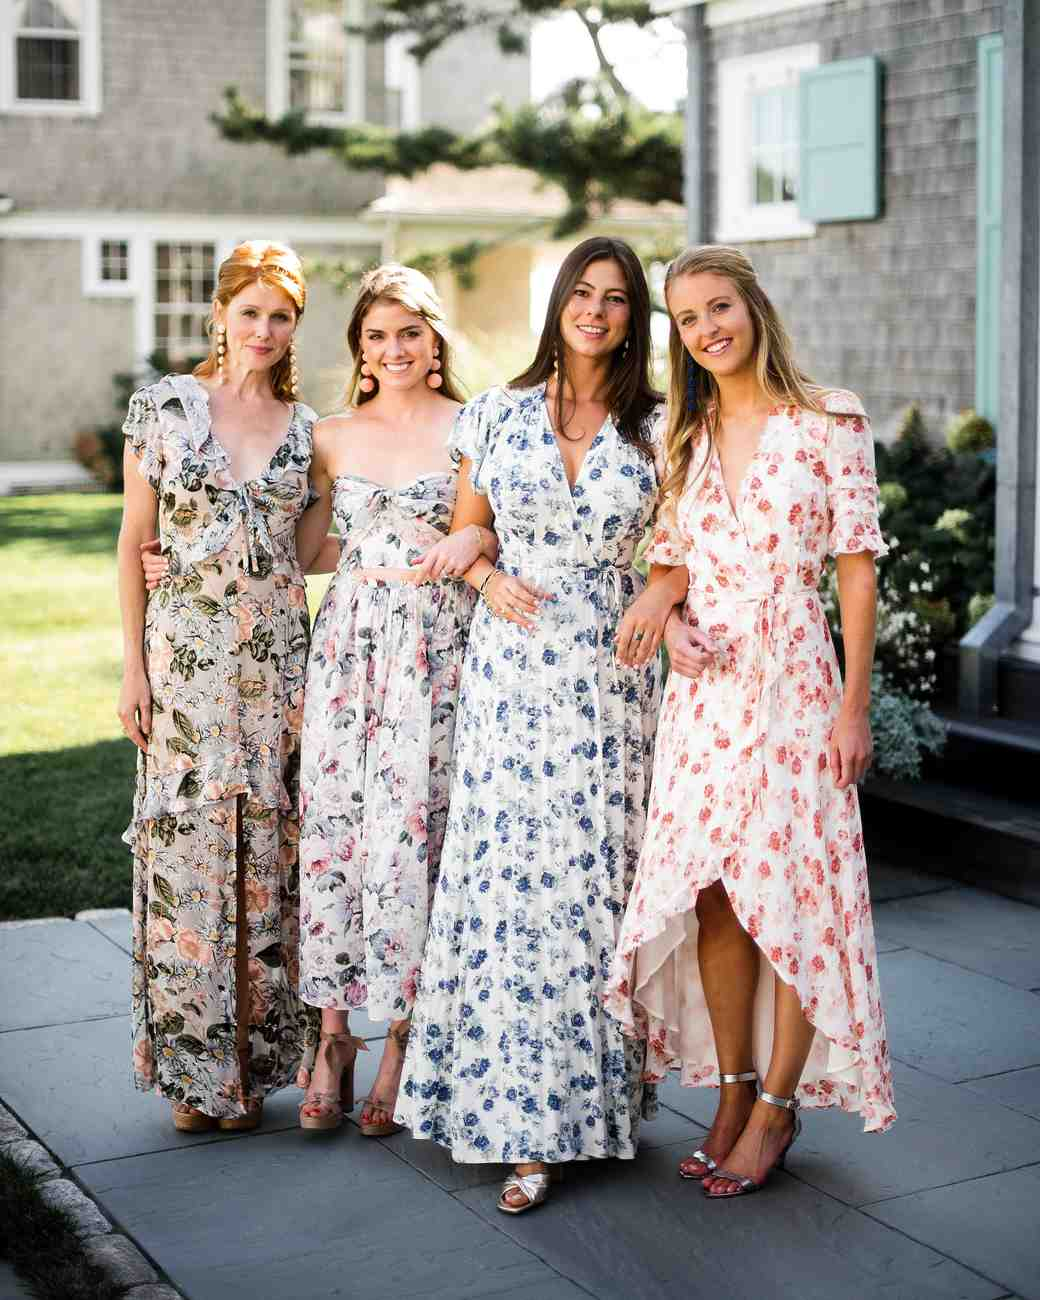 Party Chic 38 Looks That Prove Bridesmaids Dresses Can Be Chic Martha